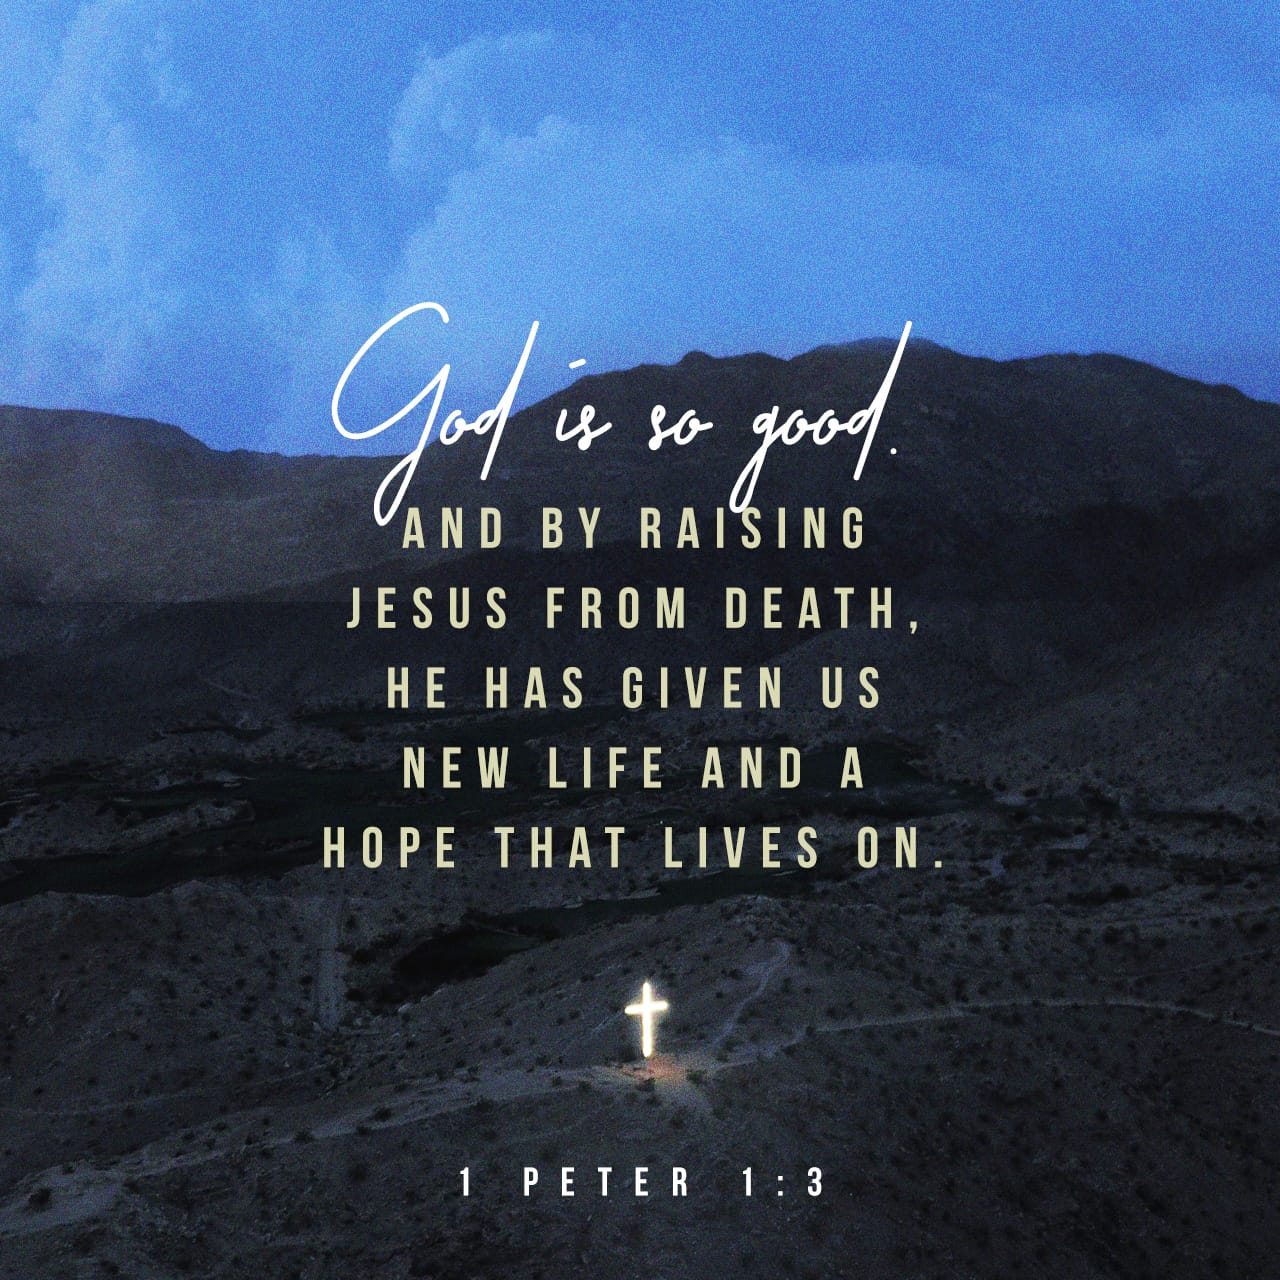 Blessed be the God and Father of our Lord Jesus Christ, which according to his abundant mercy hath begotten us again unto a lively hope by the resurrection of Jesus Christ from the dead, 1 Peter 1:3 KJV https://bible.com/bible/1/1pe.1.3.KJV